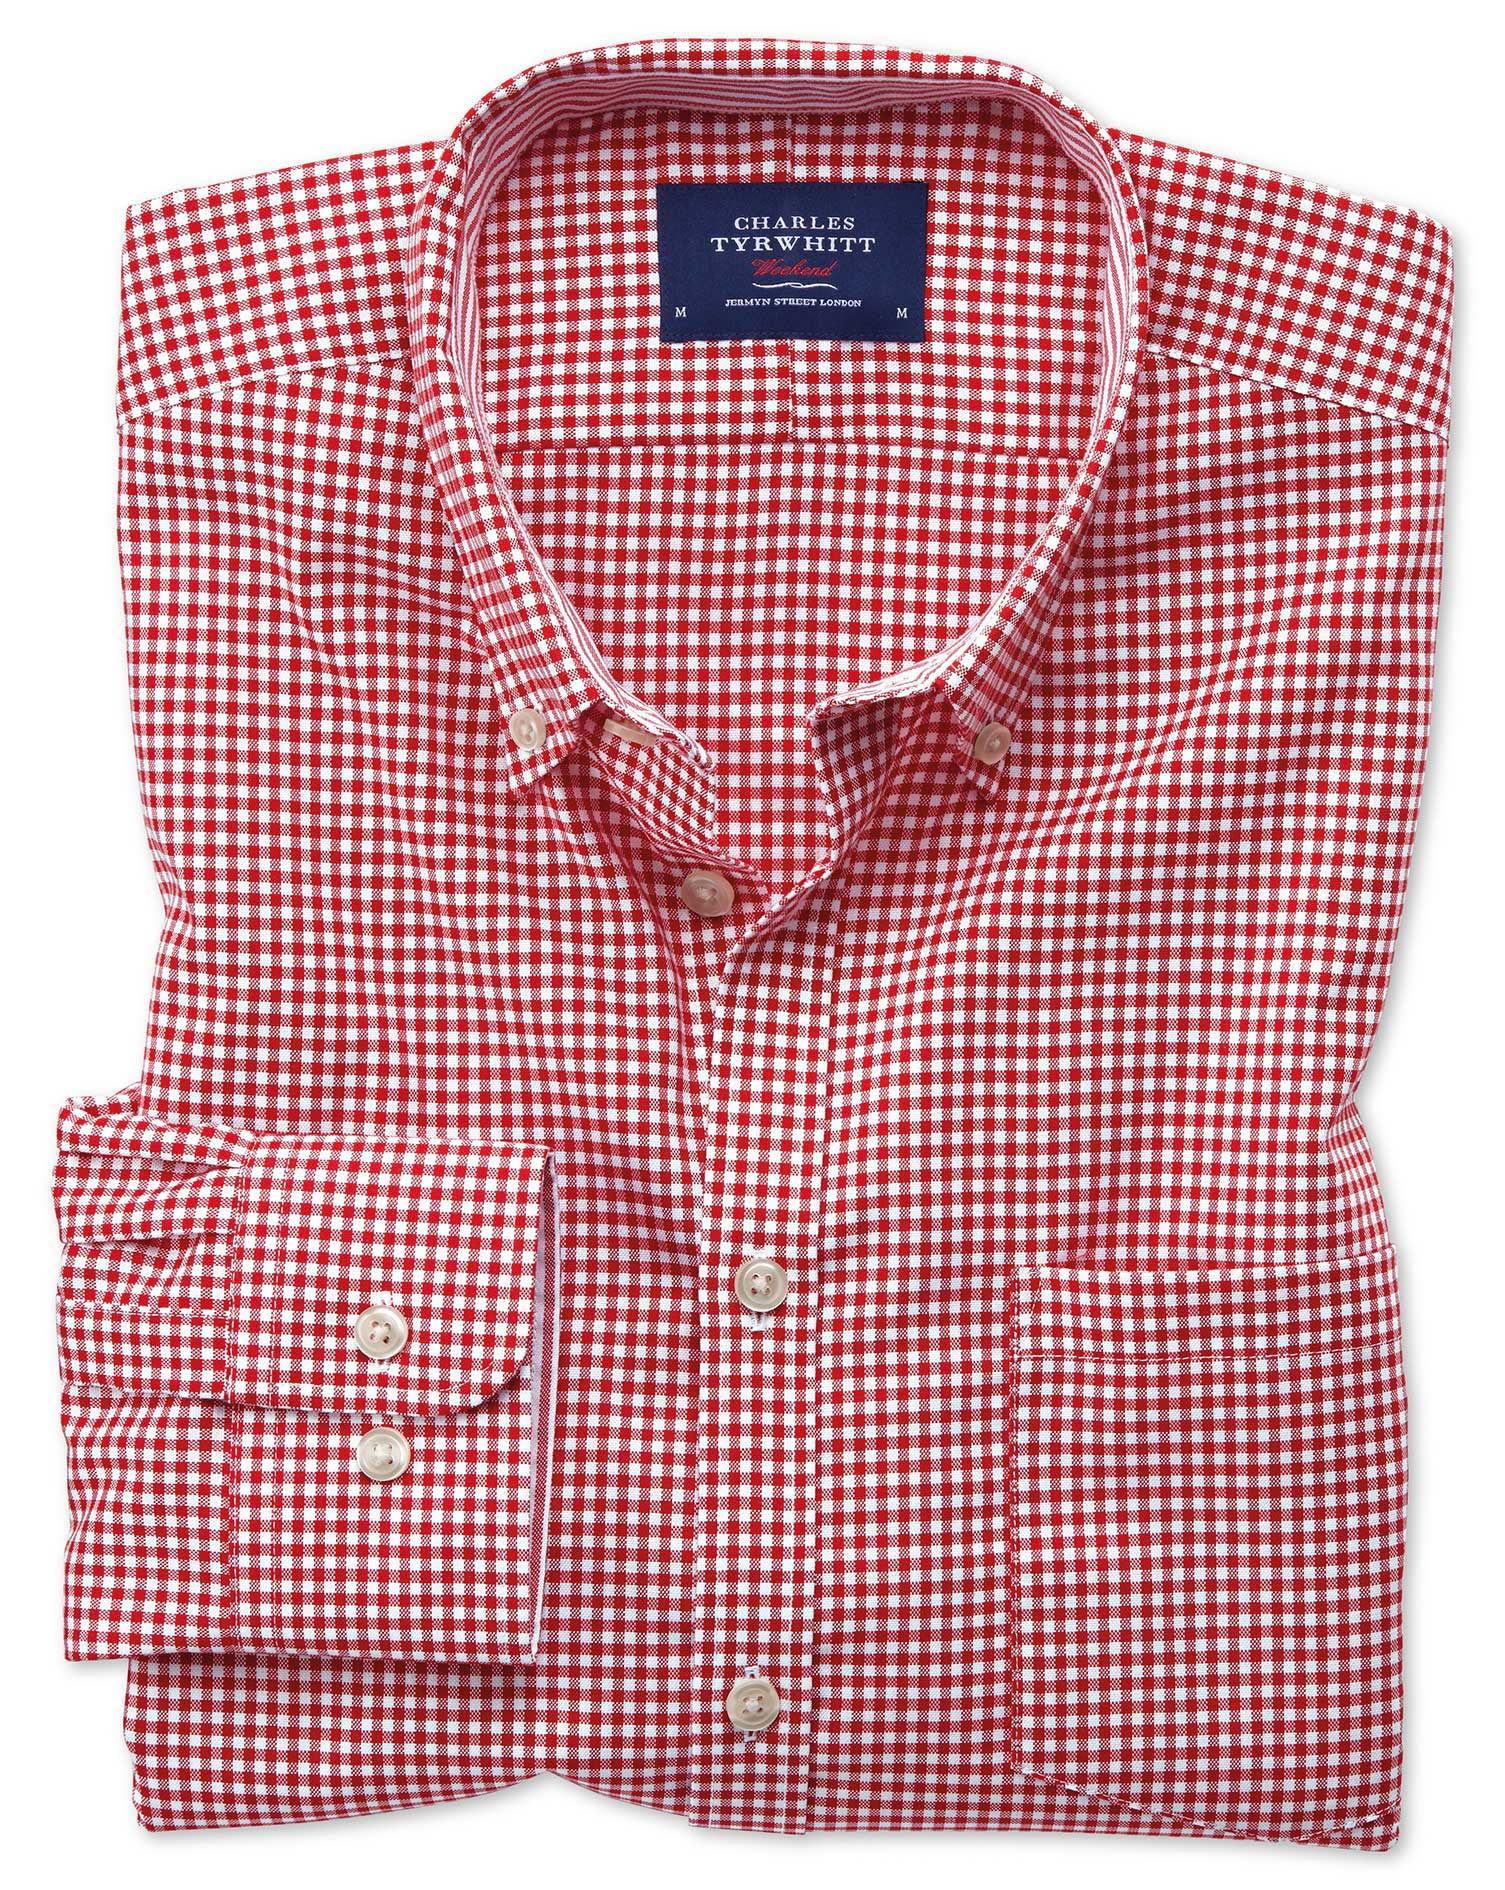 Slim Fit Button Down Non Iron Oxford Gingham Red Shirt